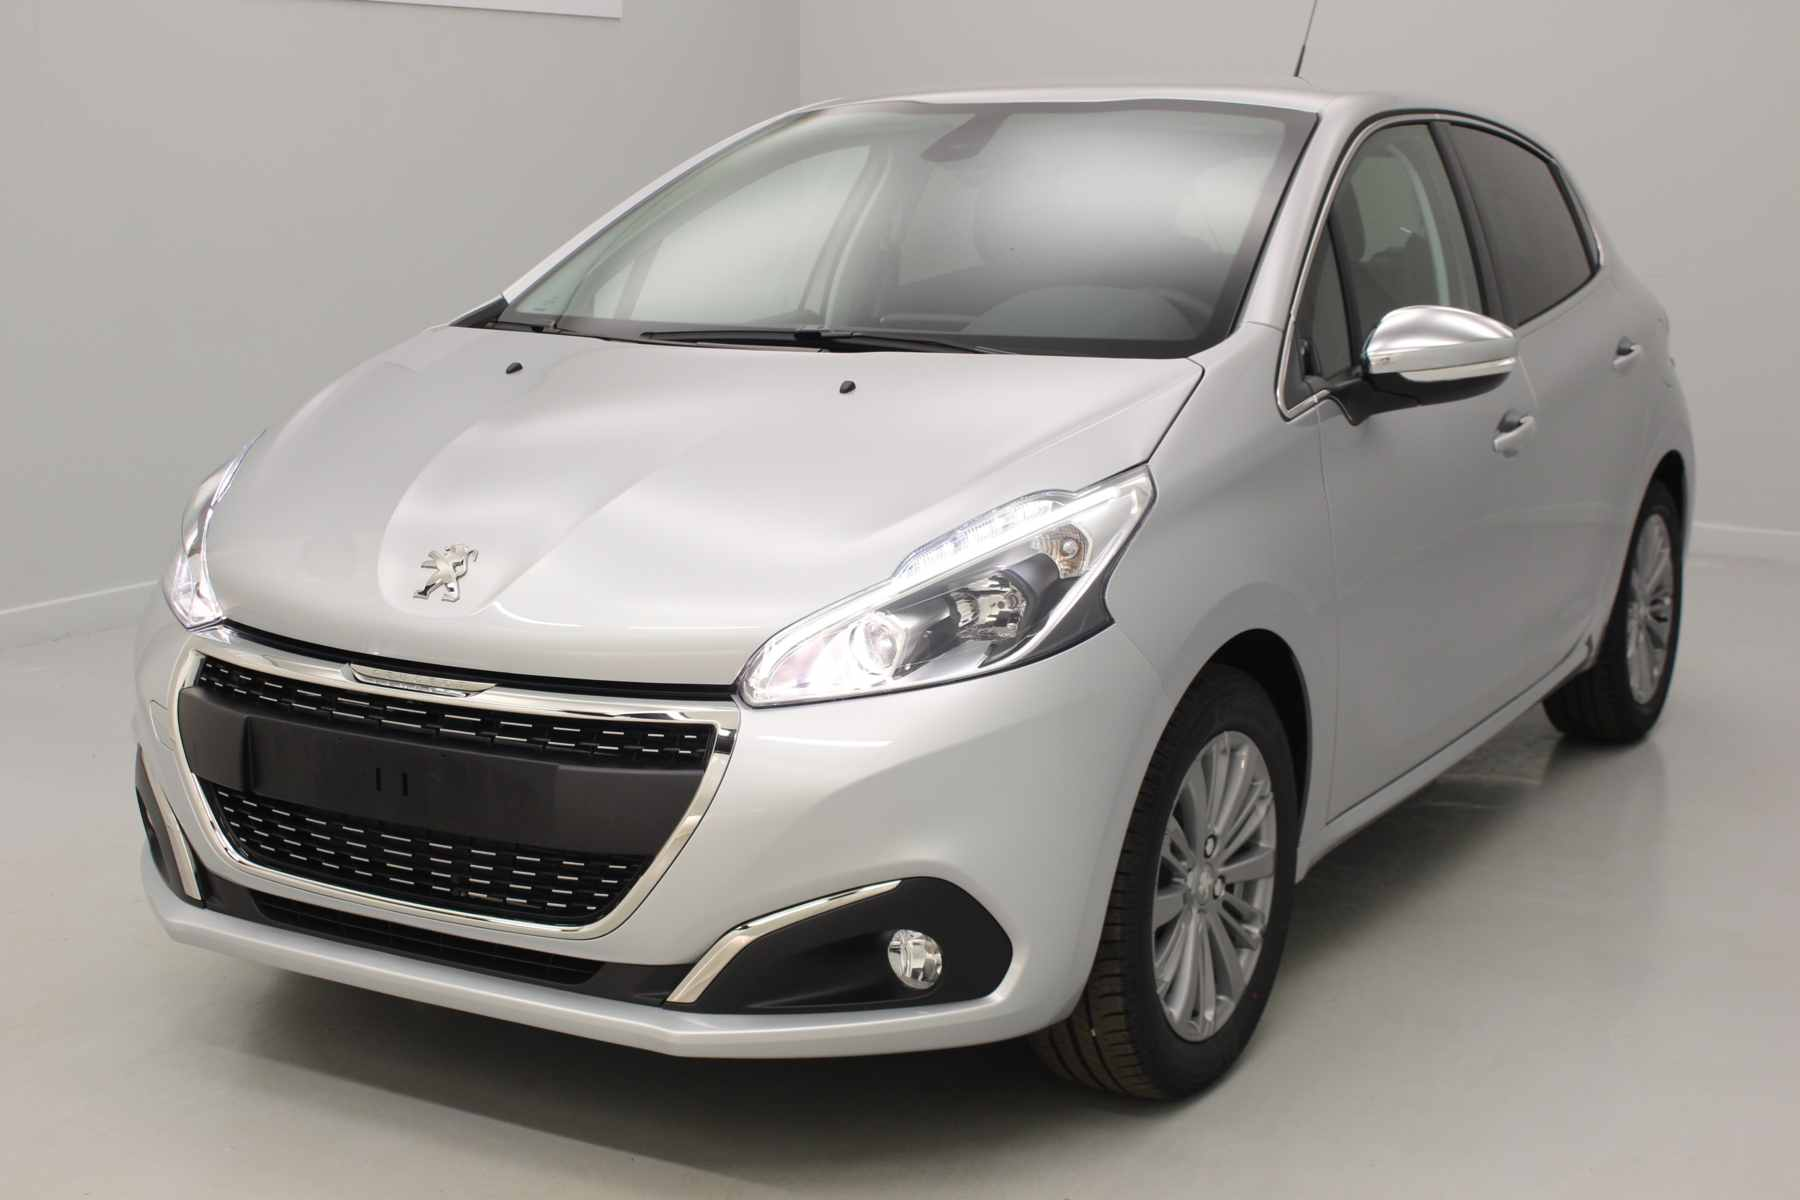 PEUGEOT 208 1.2 PureTech 82ch BVM5 Allure Gris Aluminium + Navigation + Roue de secours + Extension de garantie 3 ans avec options